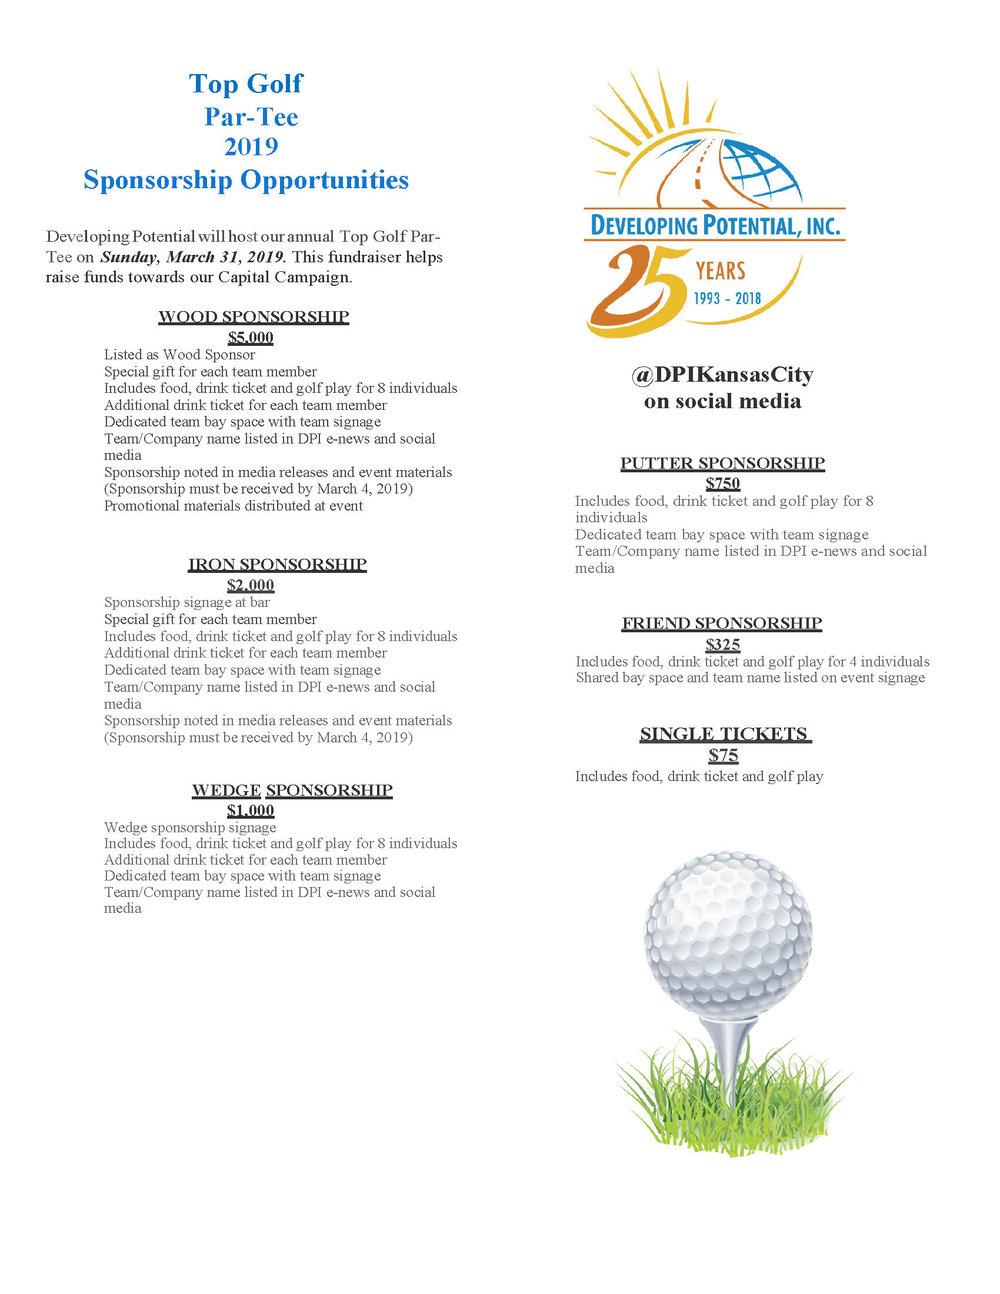 DOWNLOAD SPONSORSHIP OPPORTUNITIES INFORMATION